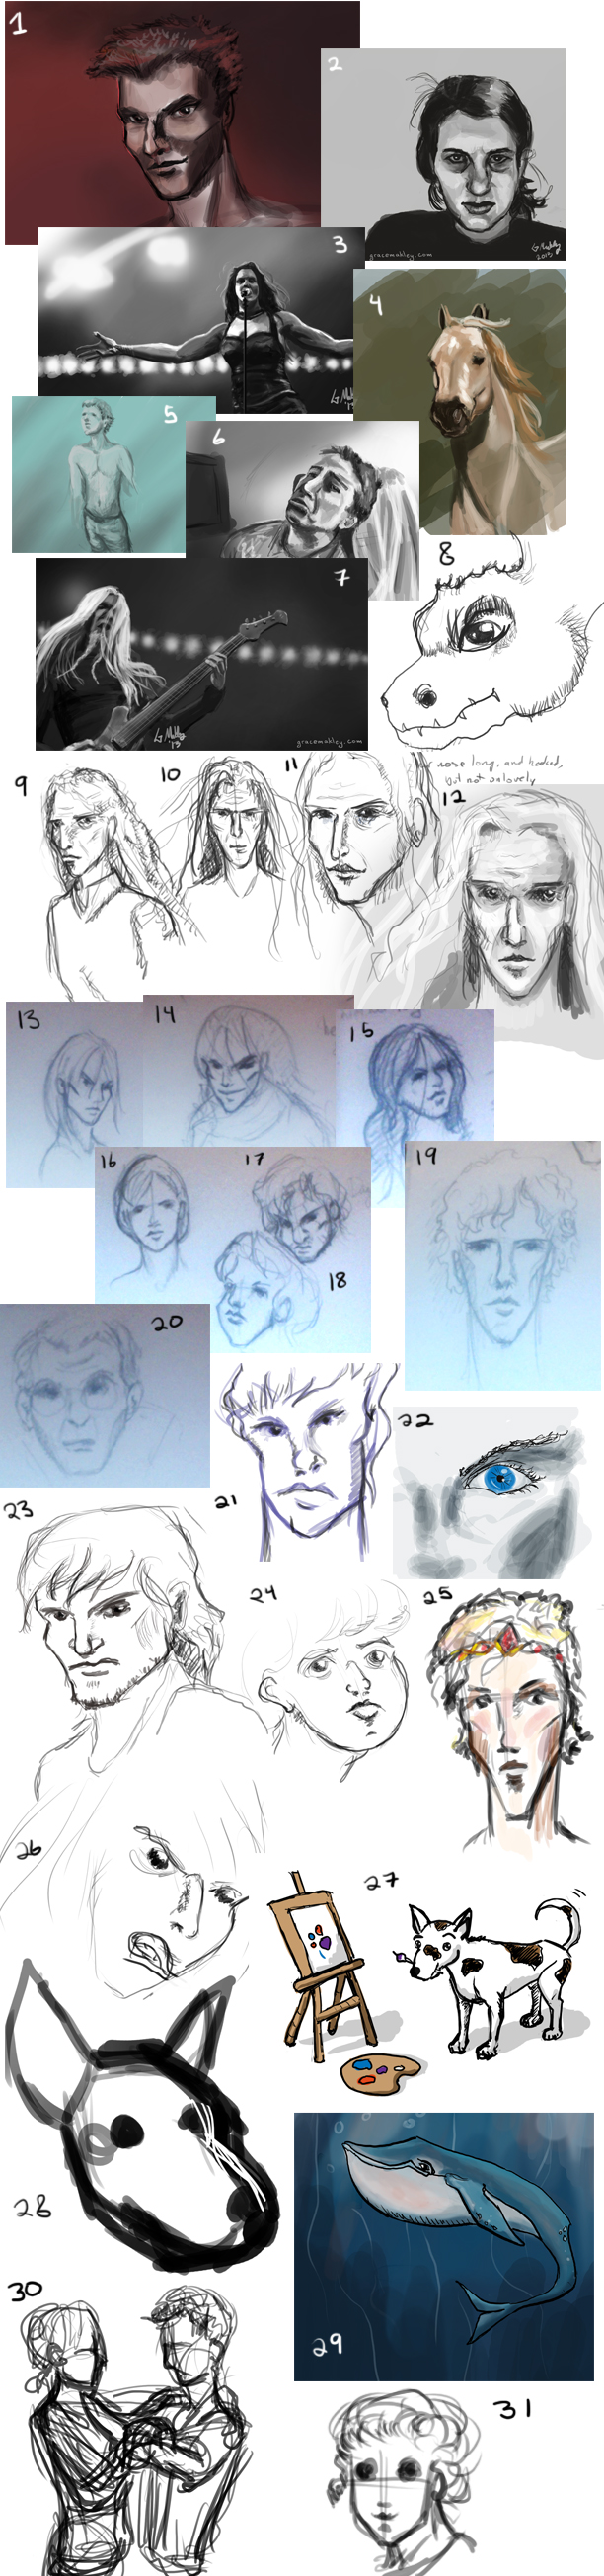 31Sketches